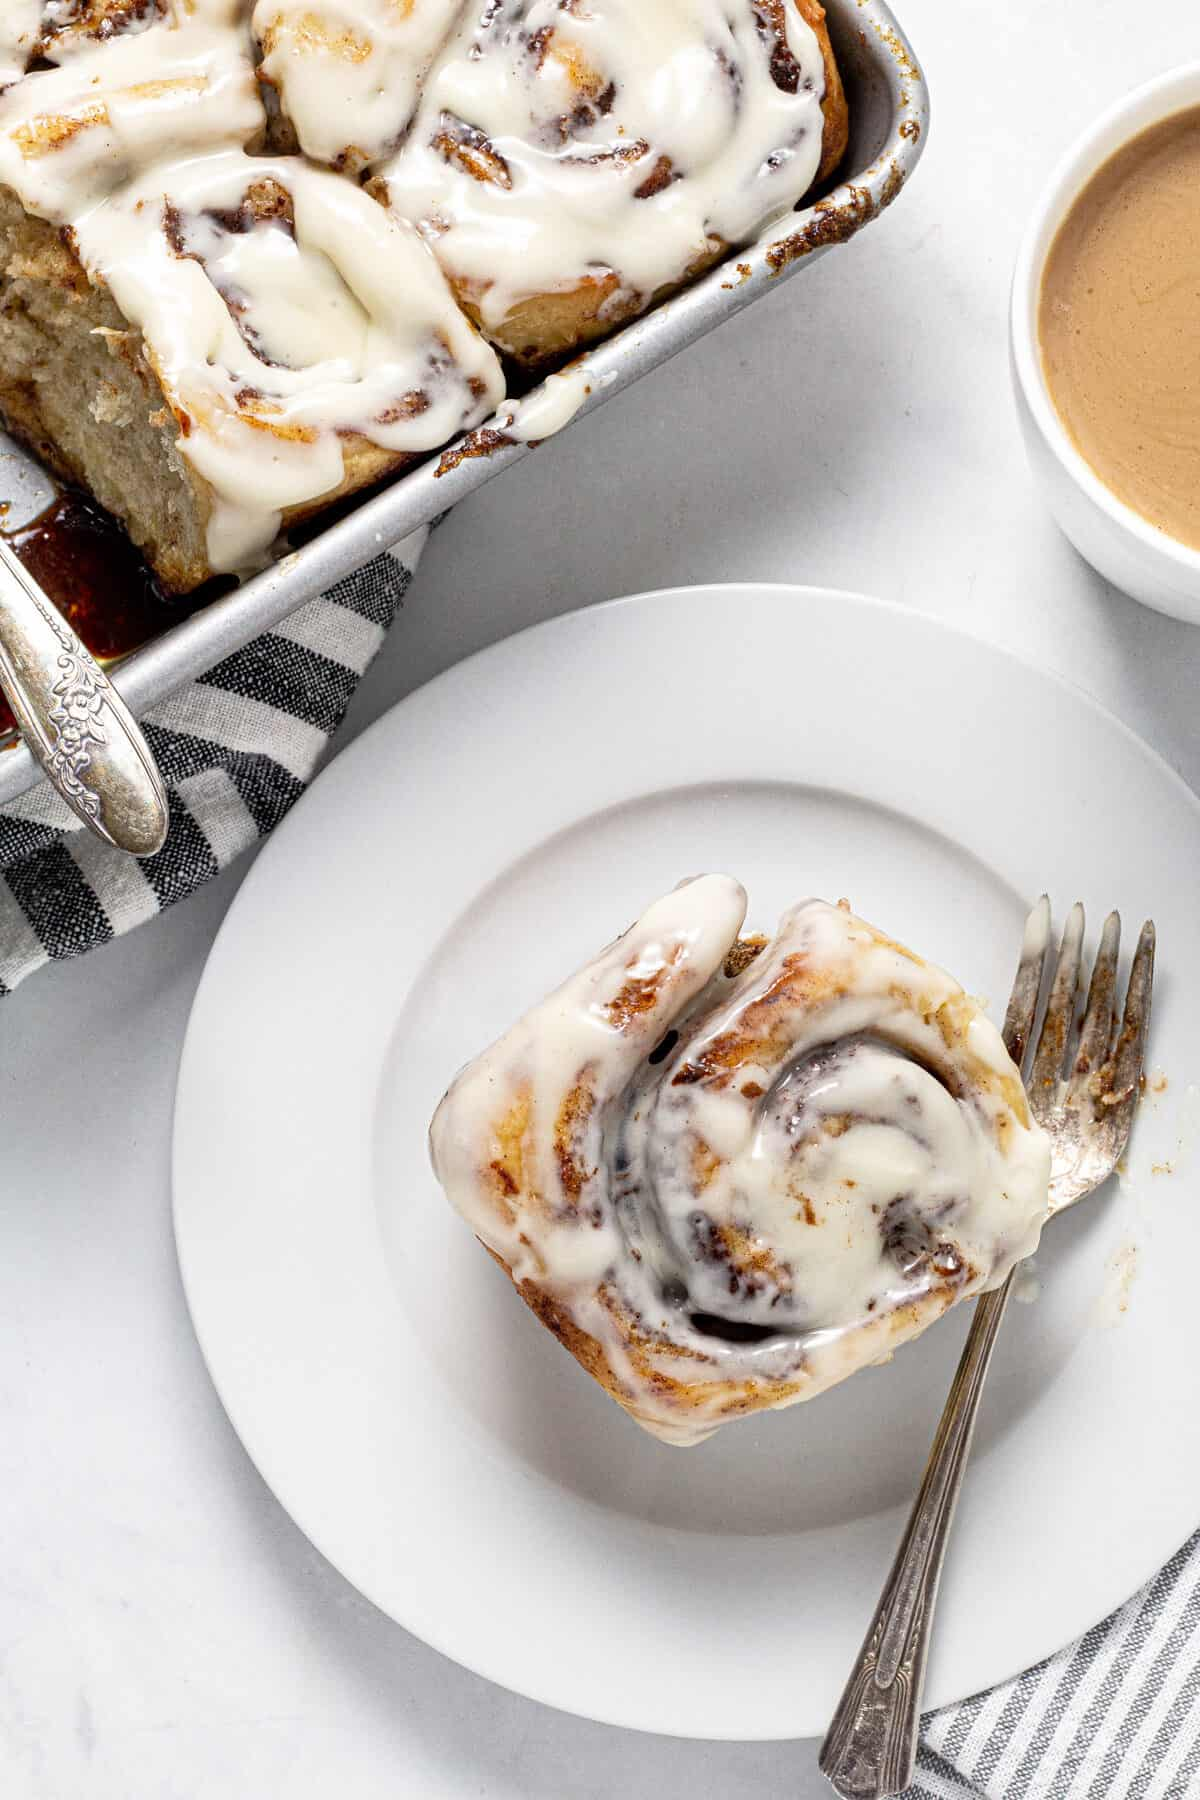 Overhead shot of a table with a pan of cinnamon rolls and a cup of coffee